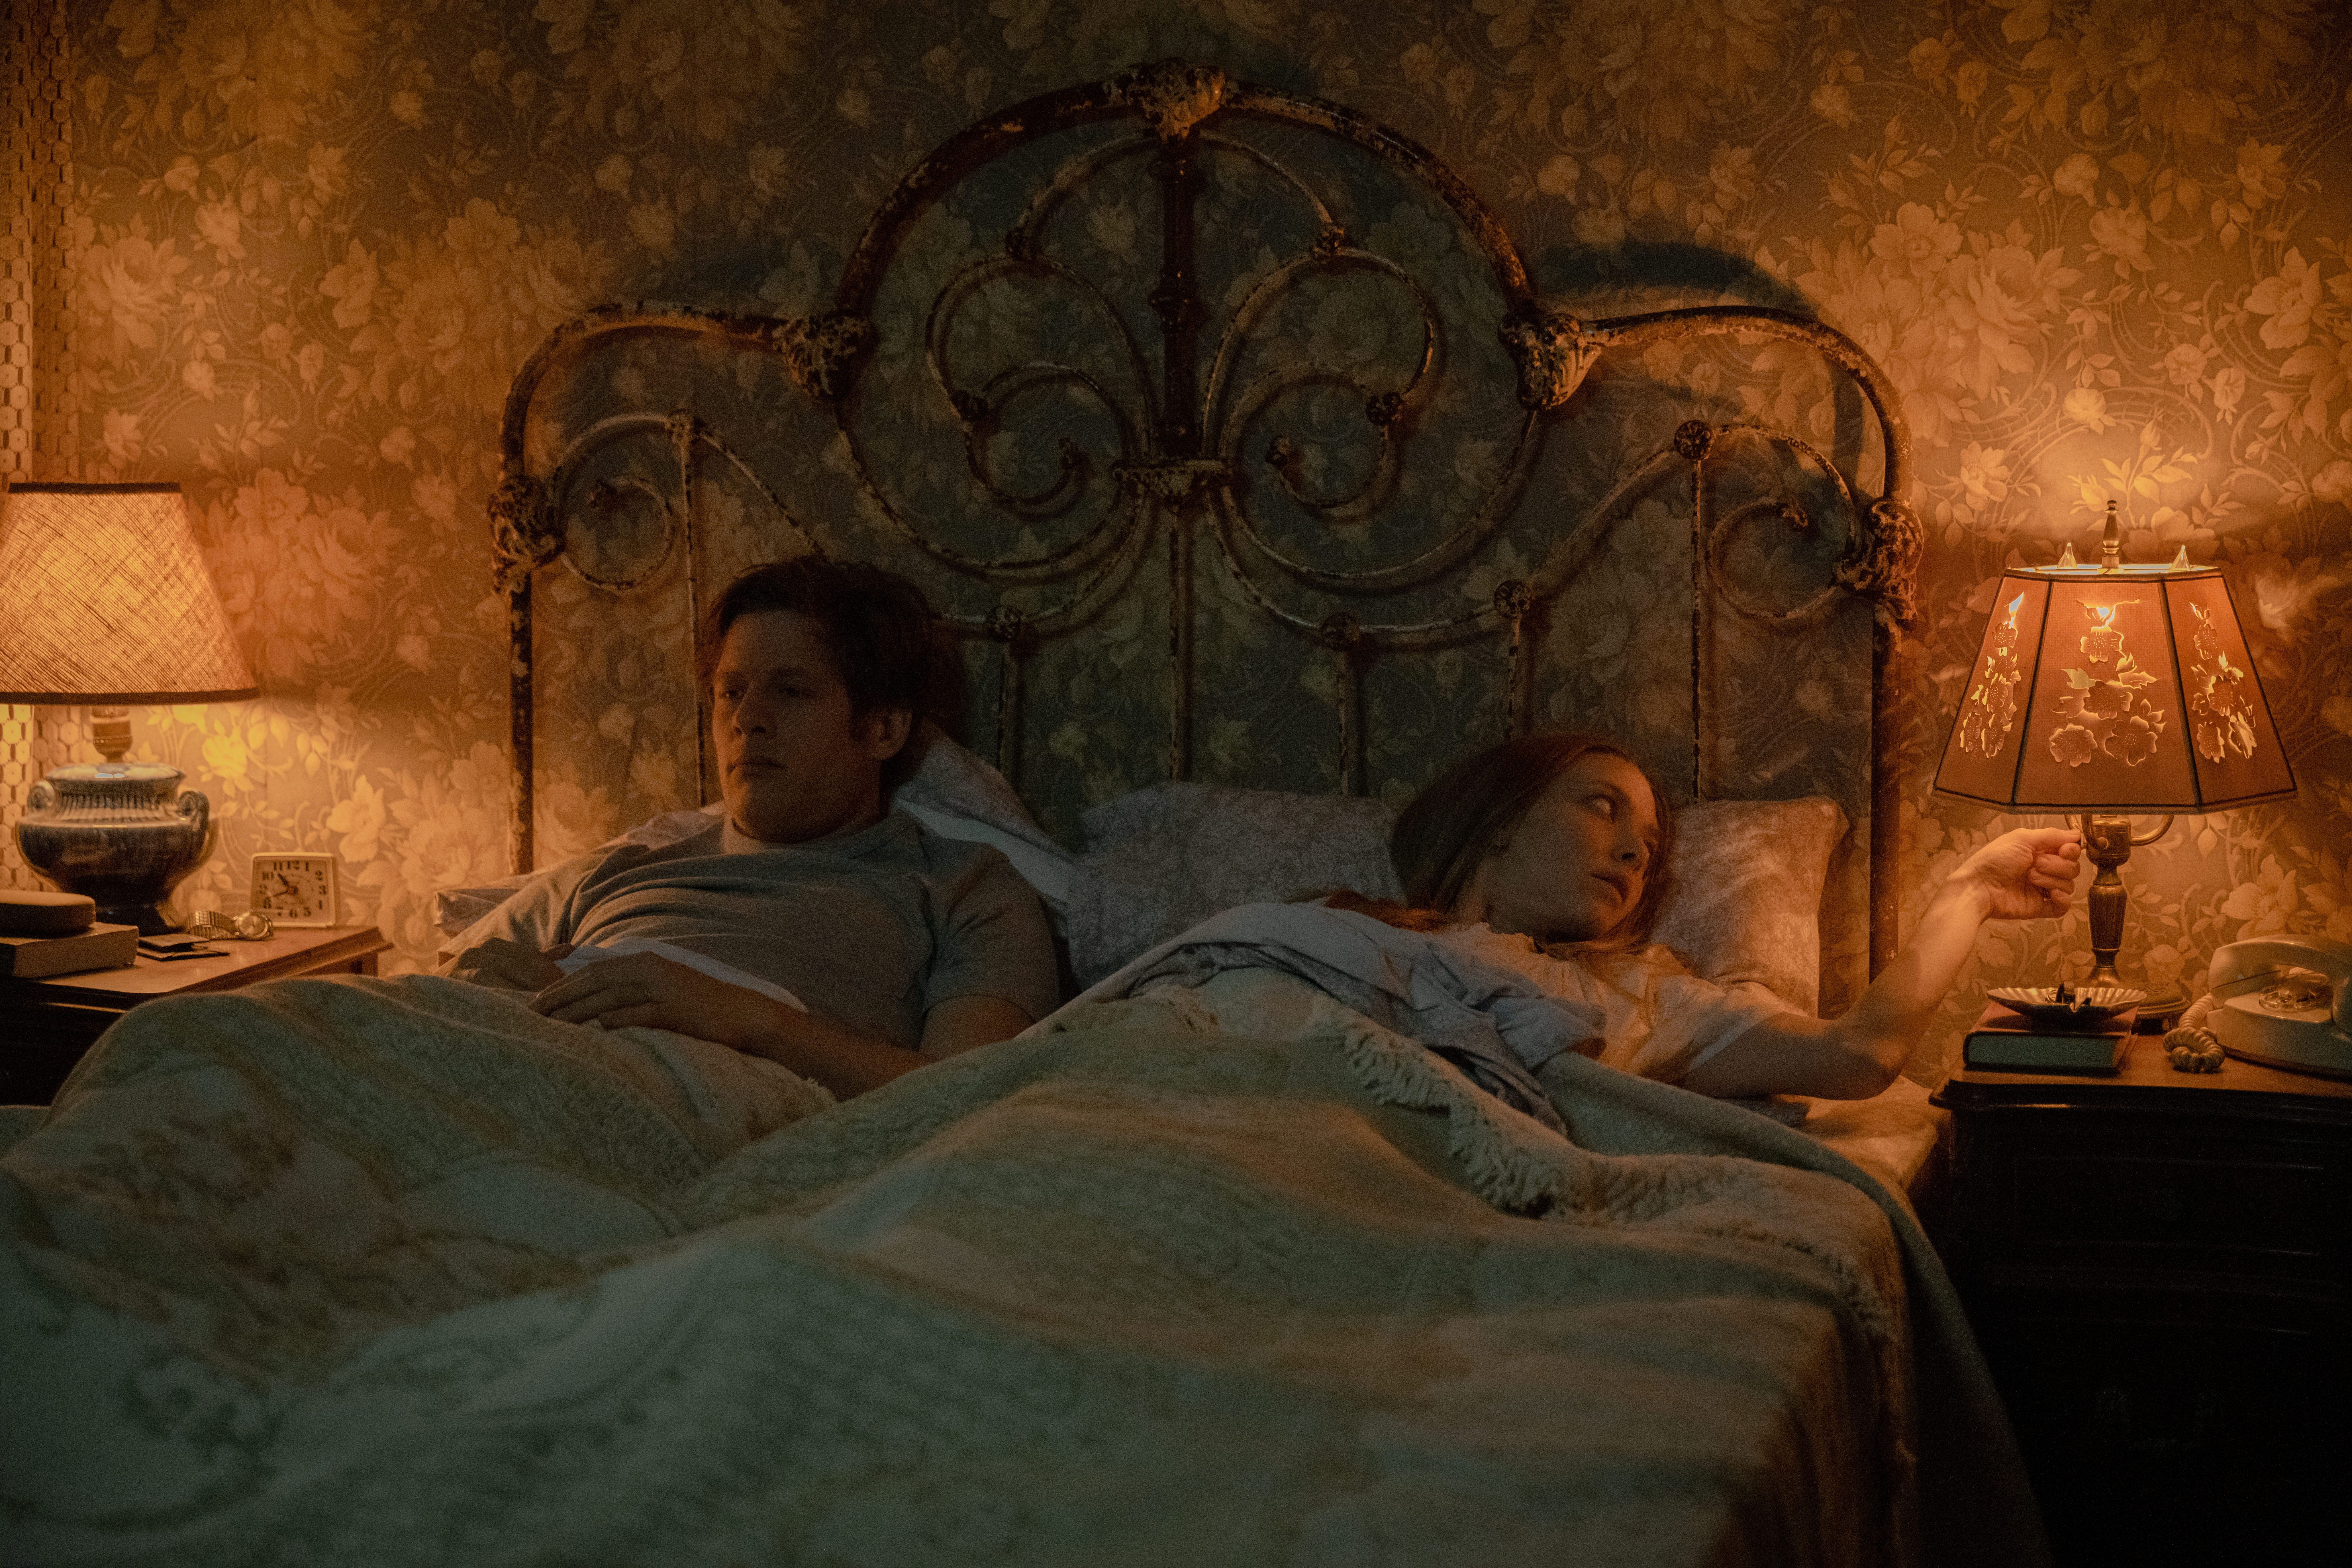 James Norton as George Clare and Amanda Seyfried as Catherine Clare in 'Things Heard & Seen'